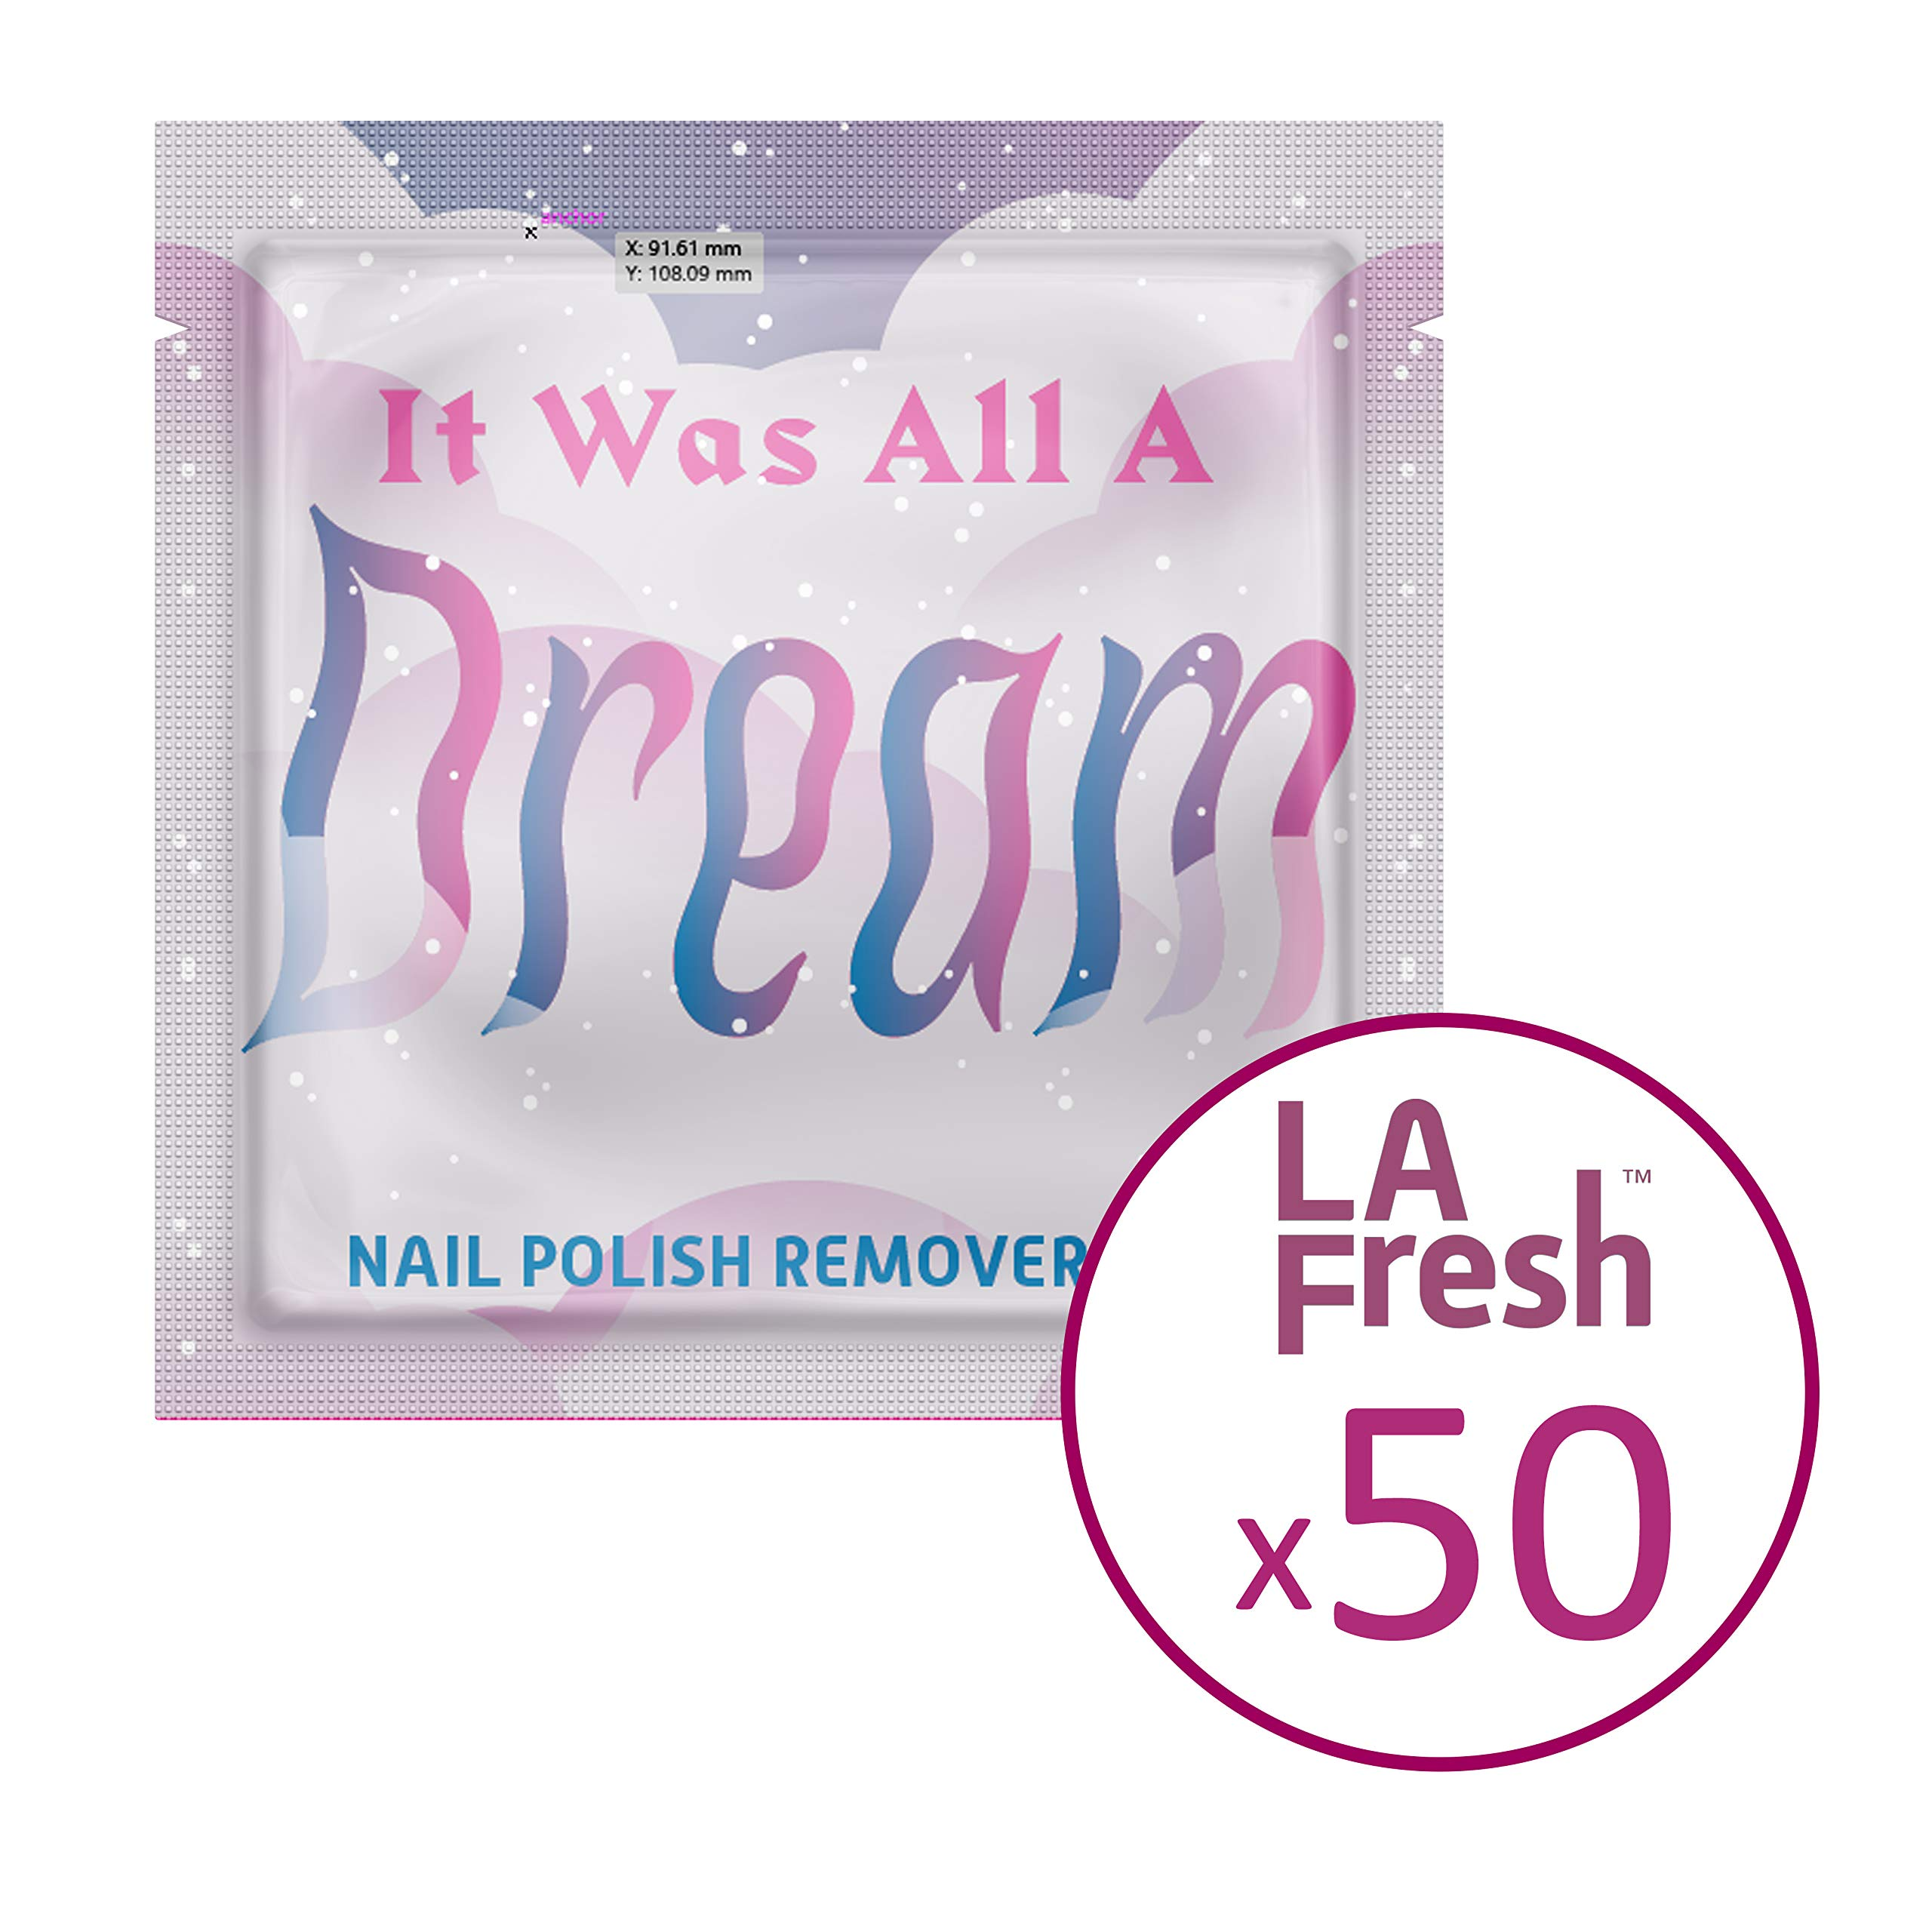 LA Fresh Classic Nail Polish Remover pads, disposable pre-soaked pads in individually sealed packet TSA Pre-approved - Pack of 50 packets by La Fresh